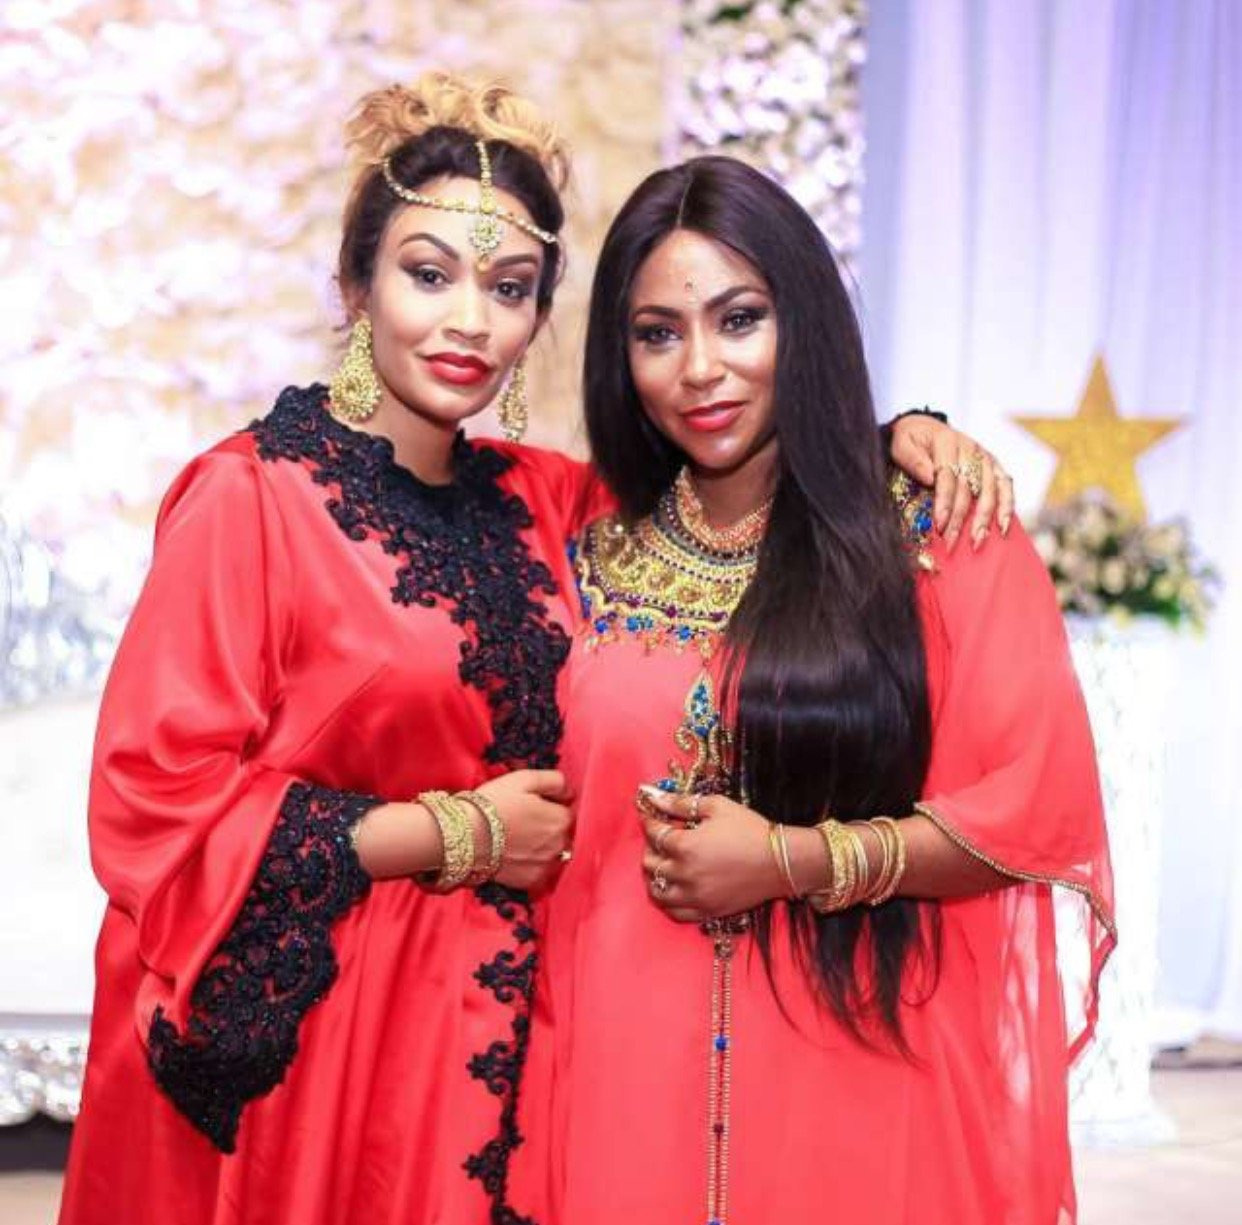 Diamond Platnumz eldest sister hints that her brother and Zari Hassan are still together!